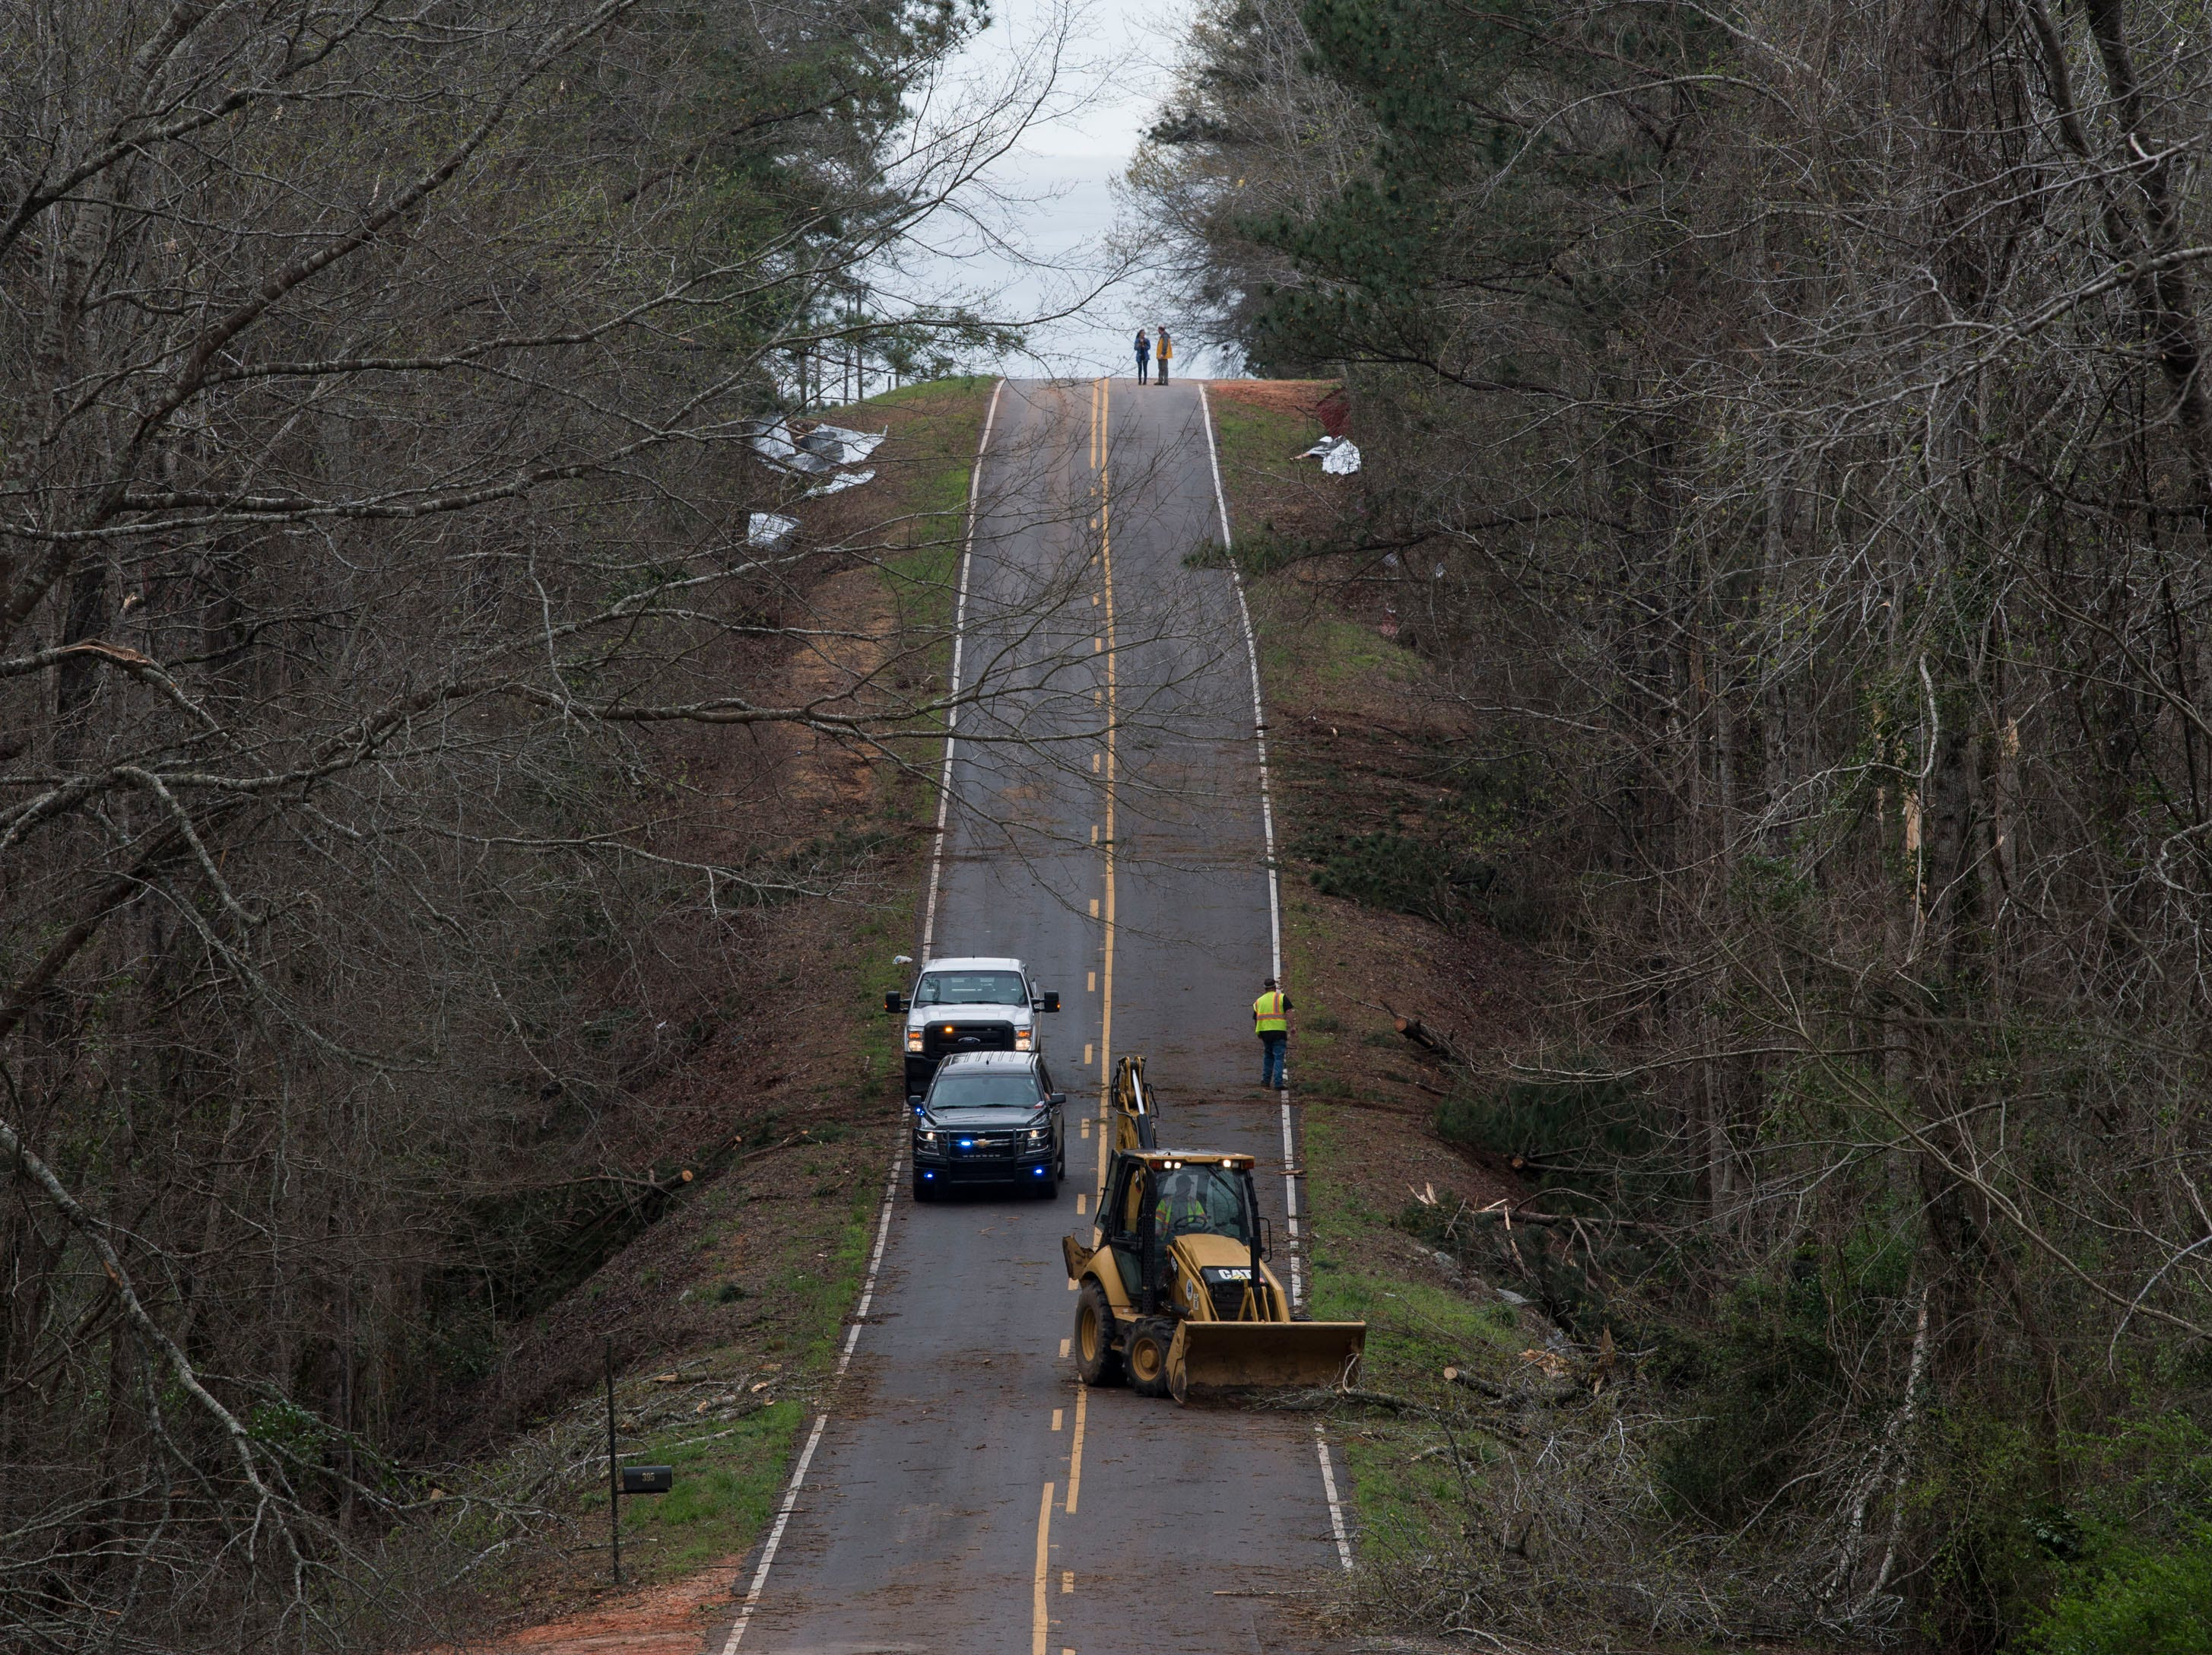 Crews work to clear the road after a possible Tornado struck in Titus, Ala., on Friday, March 15, 2019.